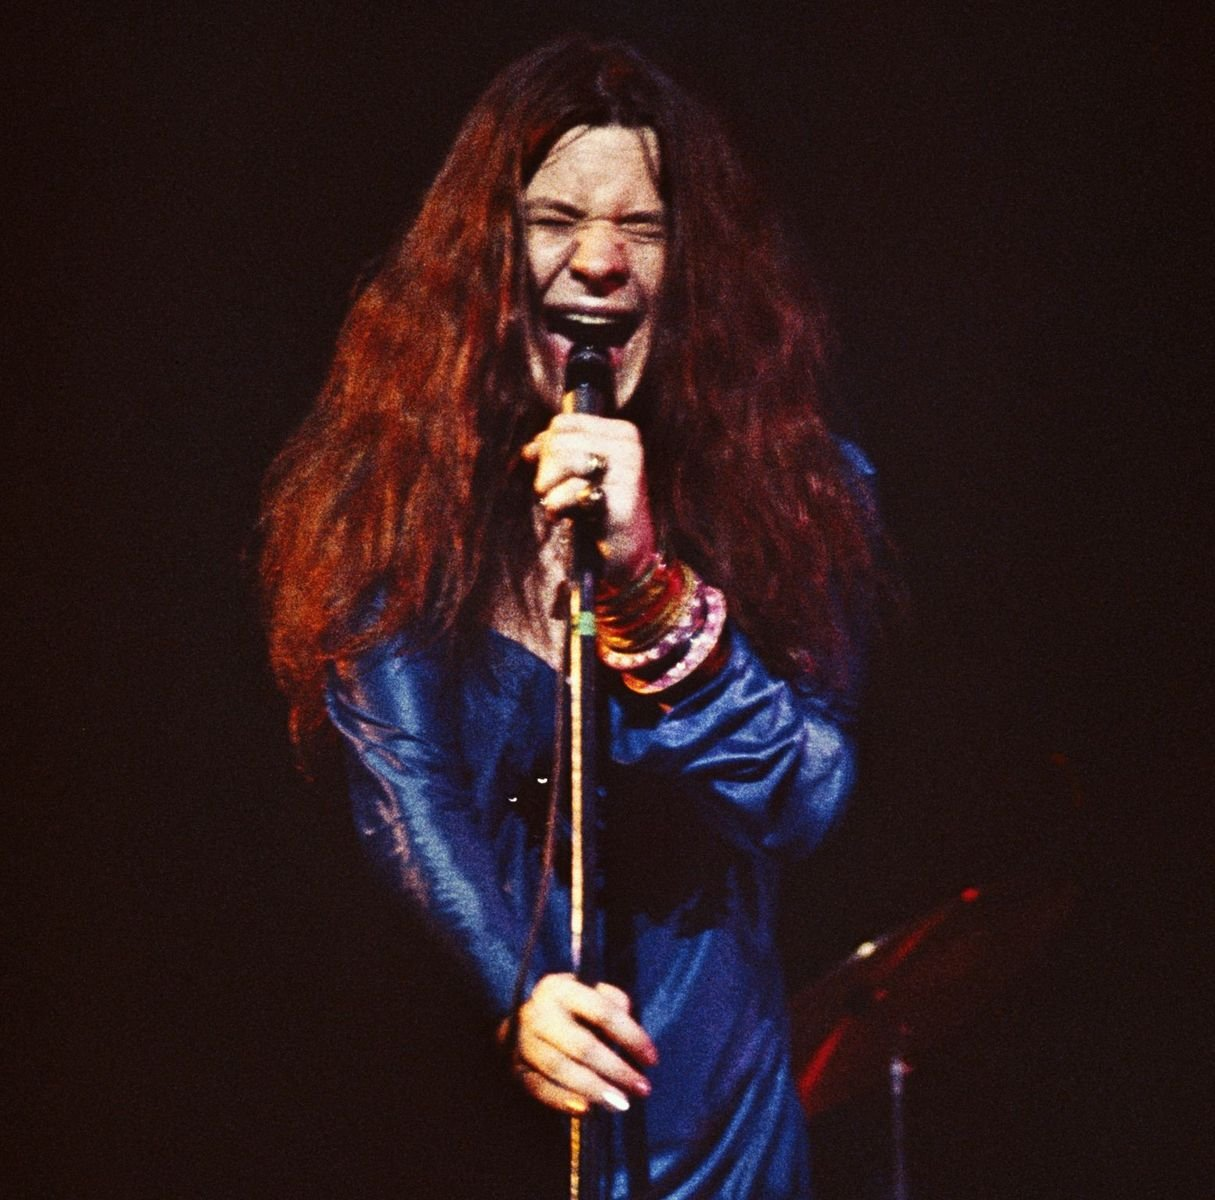 La chanteuse Janis Joplin | Photo : Getty Images